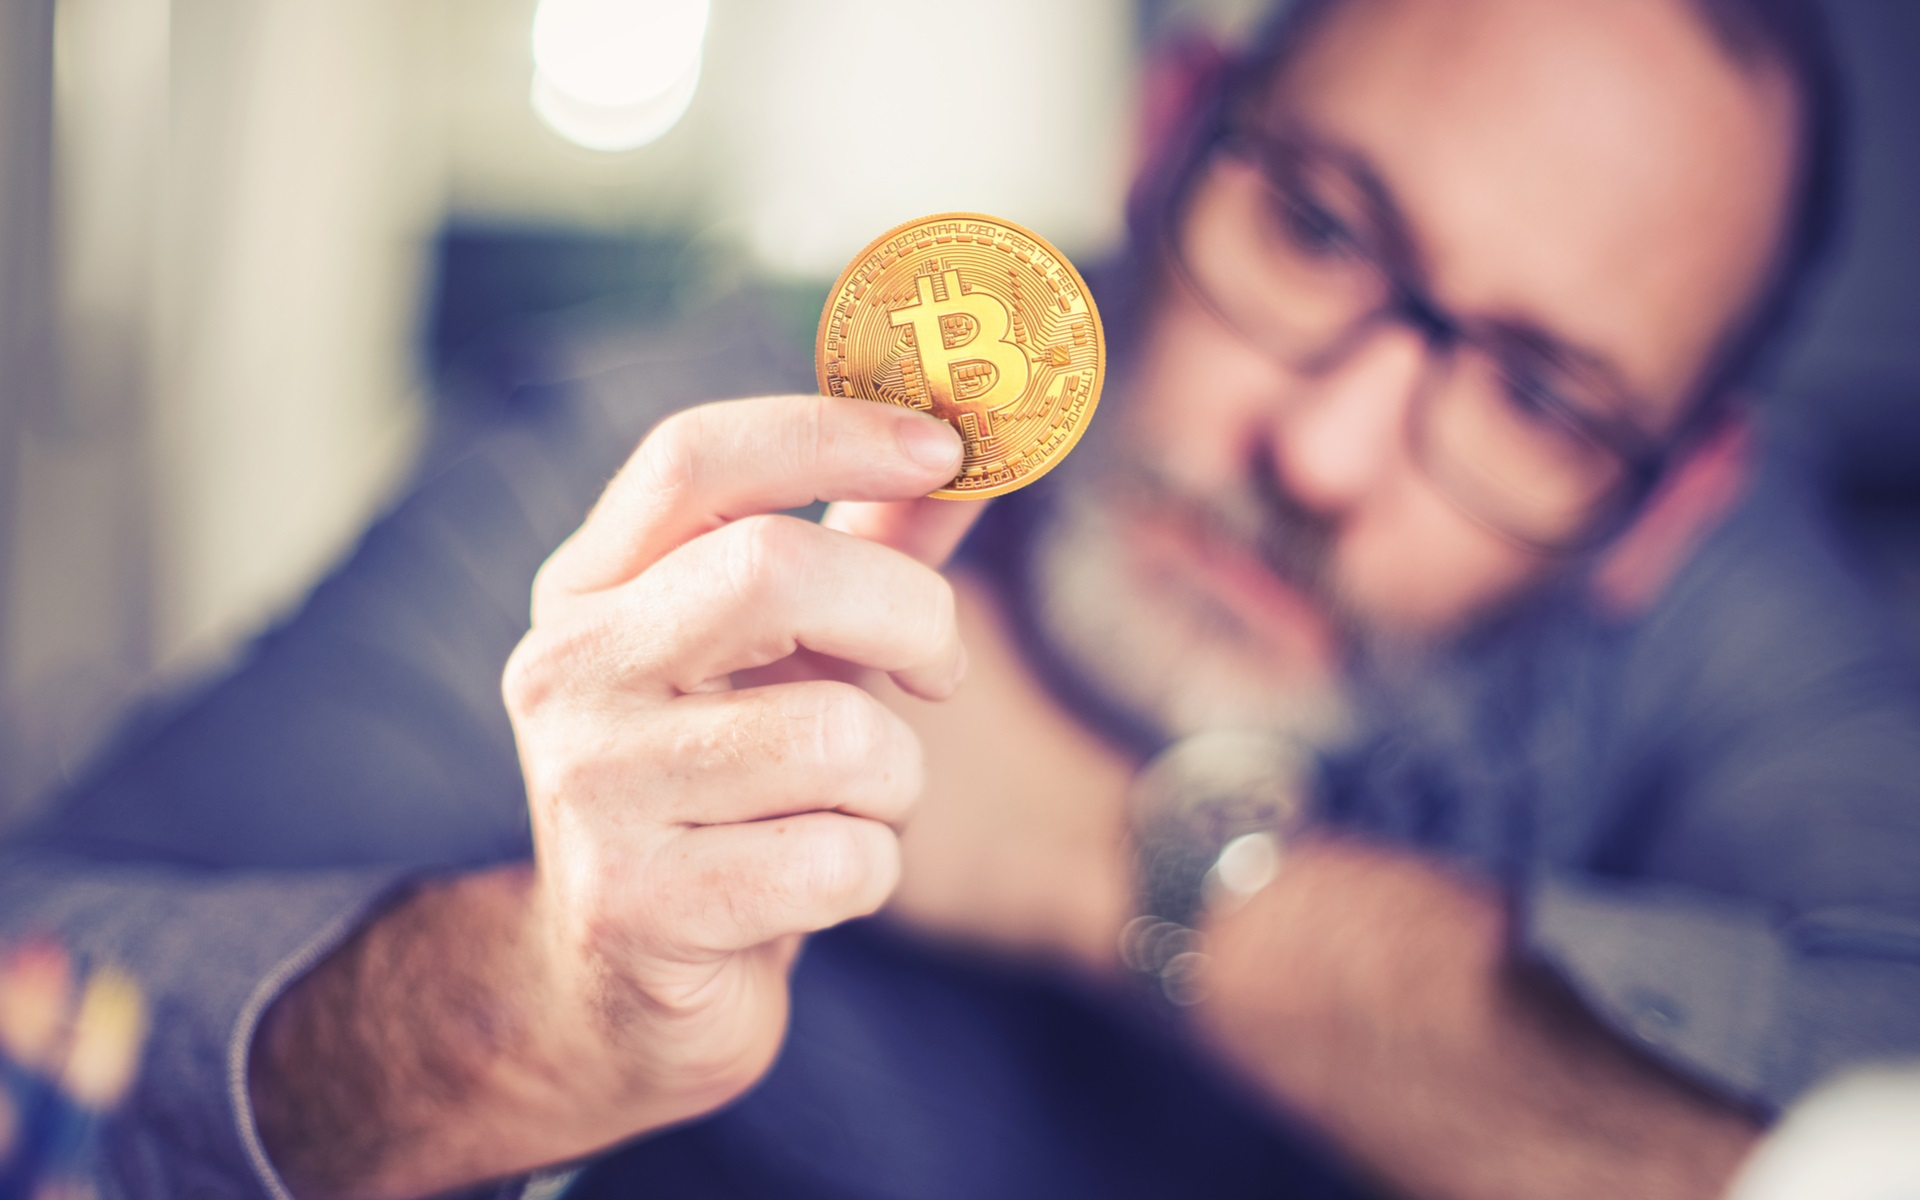 5 Plausible Reasons Bitcoin Price Exploded Over the Weekend